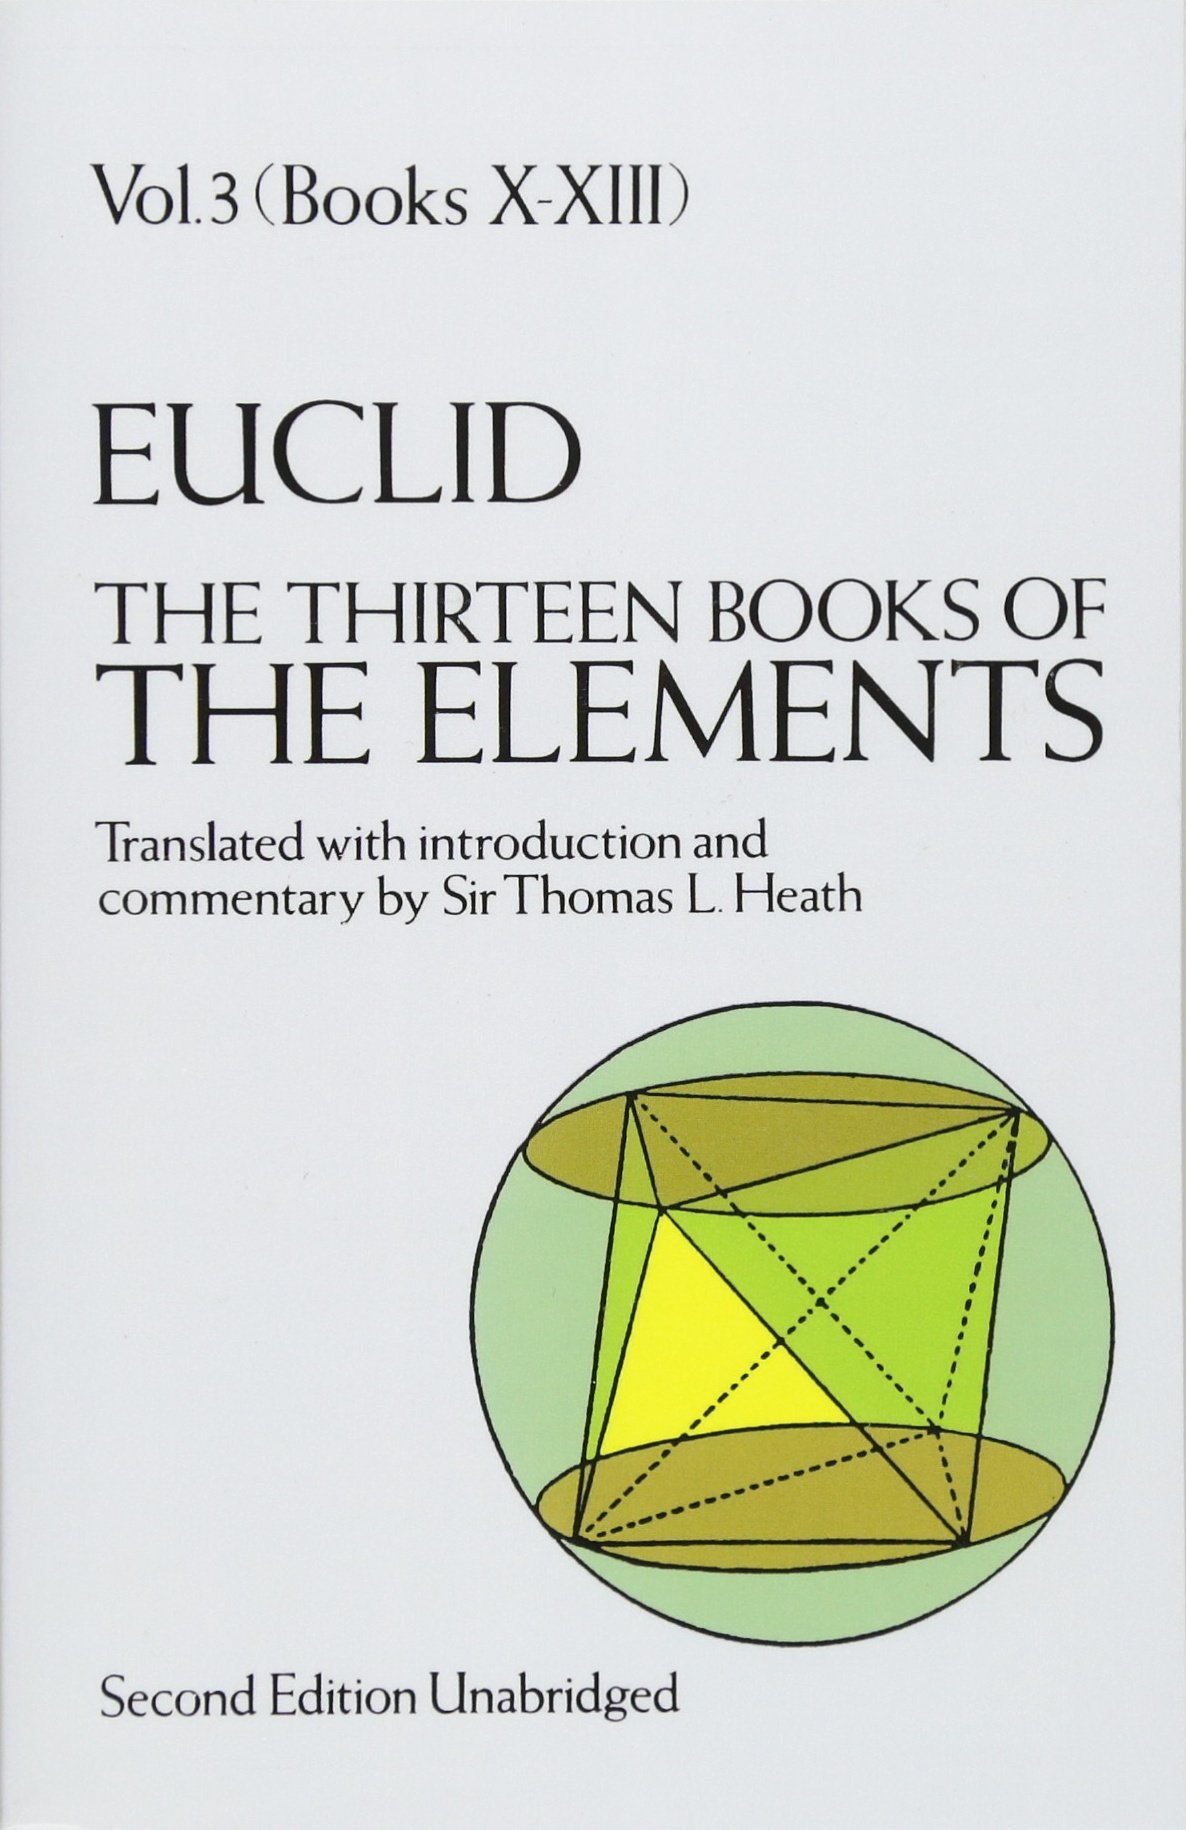 The Thirteen Books of Euclid's Elements by Thomas L. Heath (English) Paperback B